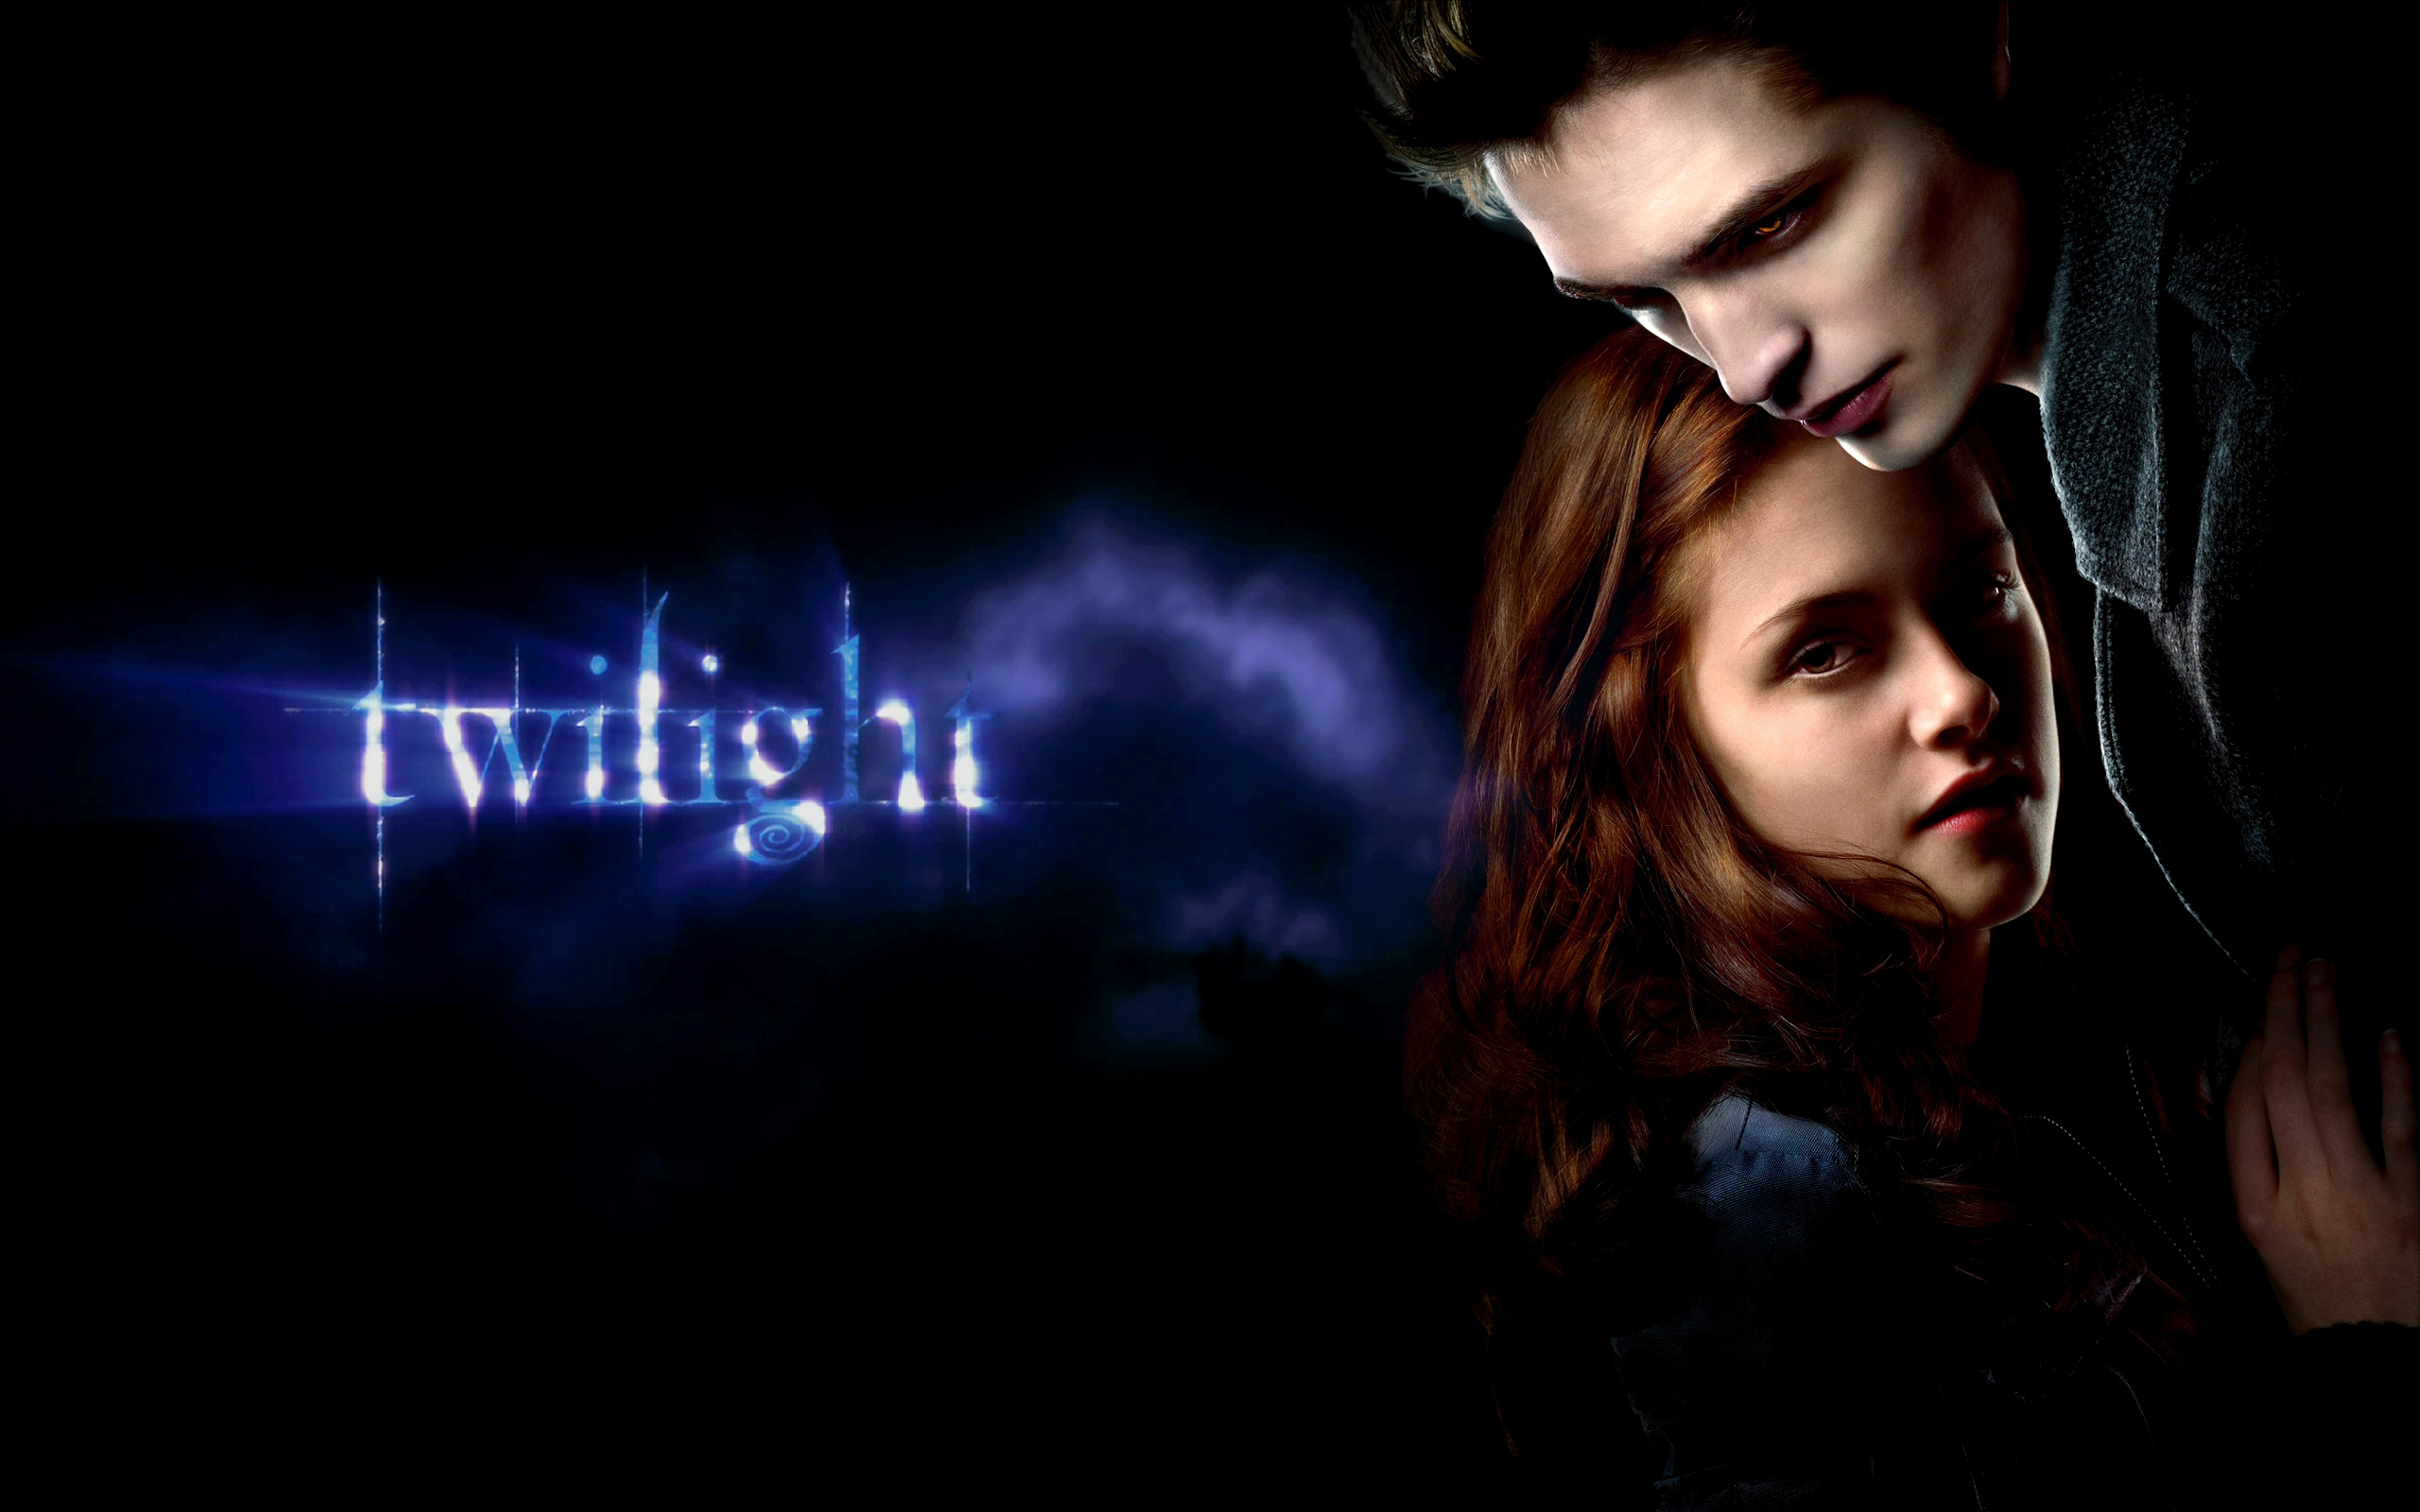 Twilight twilight series wallpaper 27232770 fanpop Twilight edward photos